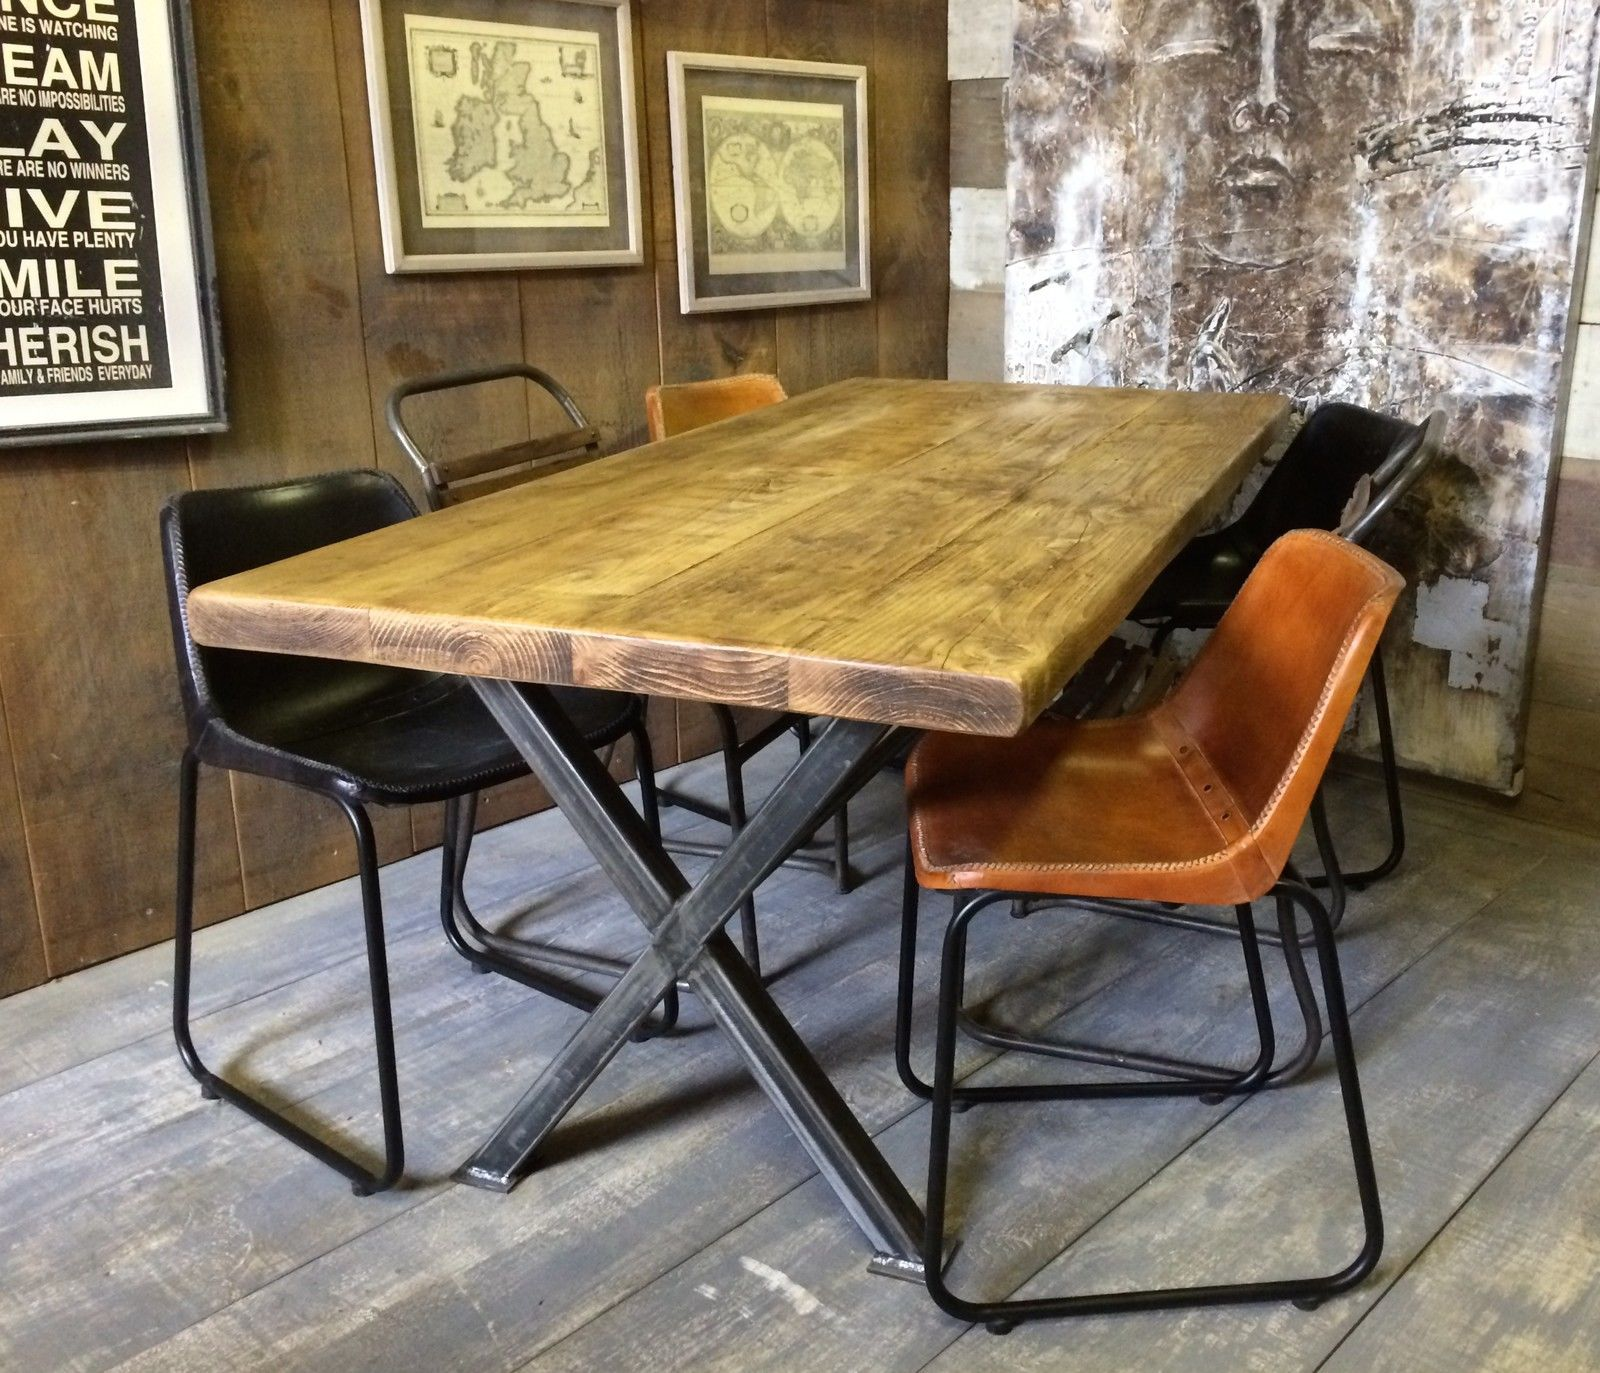 Nice X Frame Vintage Industrial Rustic Reclaimed Plank Top Dining Table. UK Made  In Home, Furniture U0026 DIY, Furniture, Tables